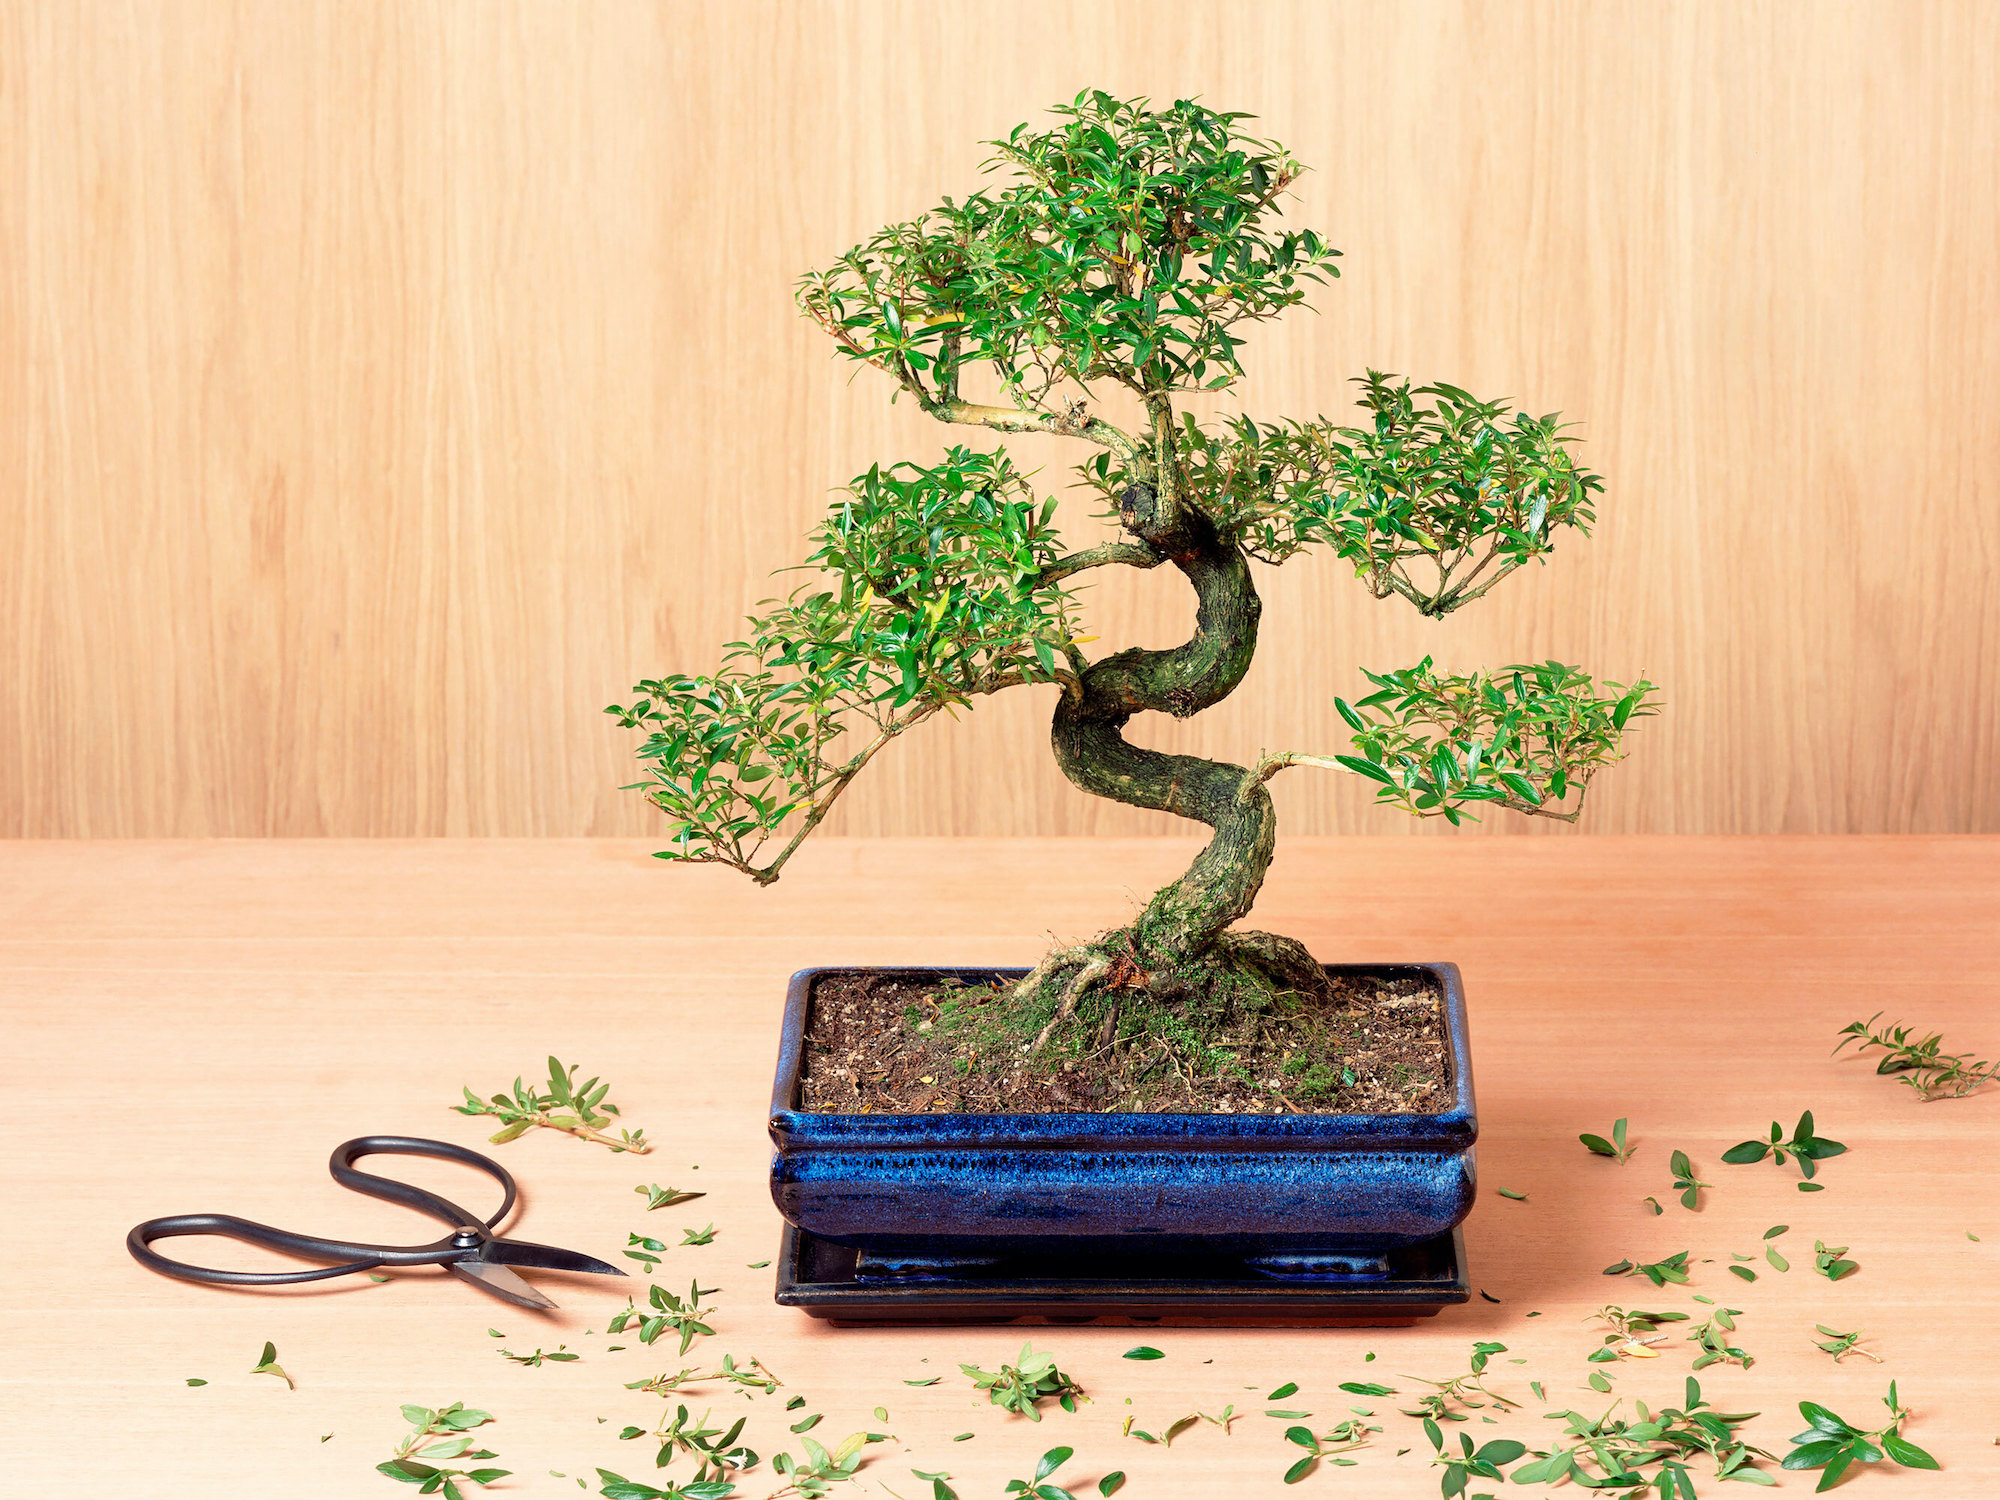 Indoor bonsai tree in shallow blue planter